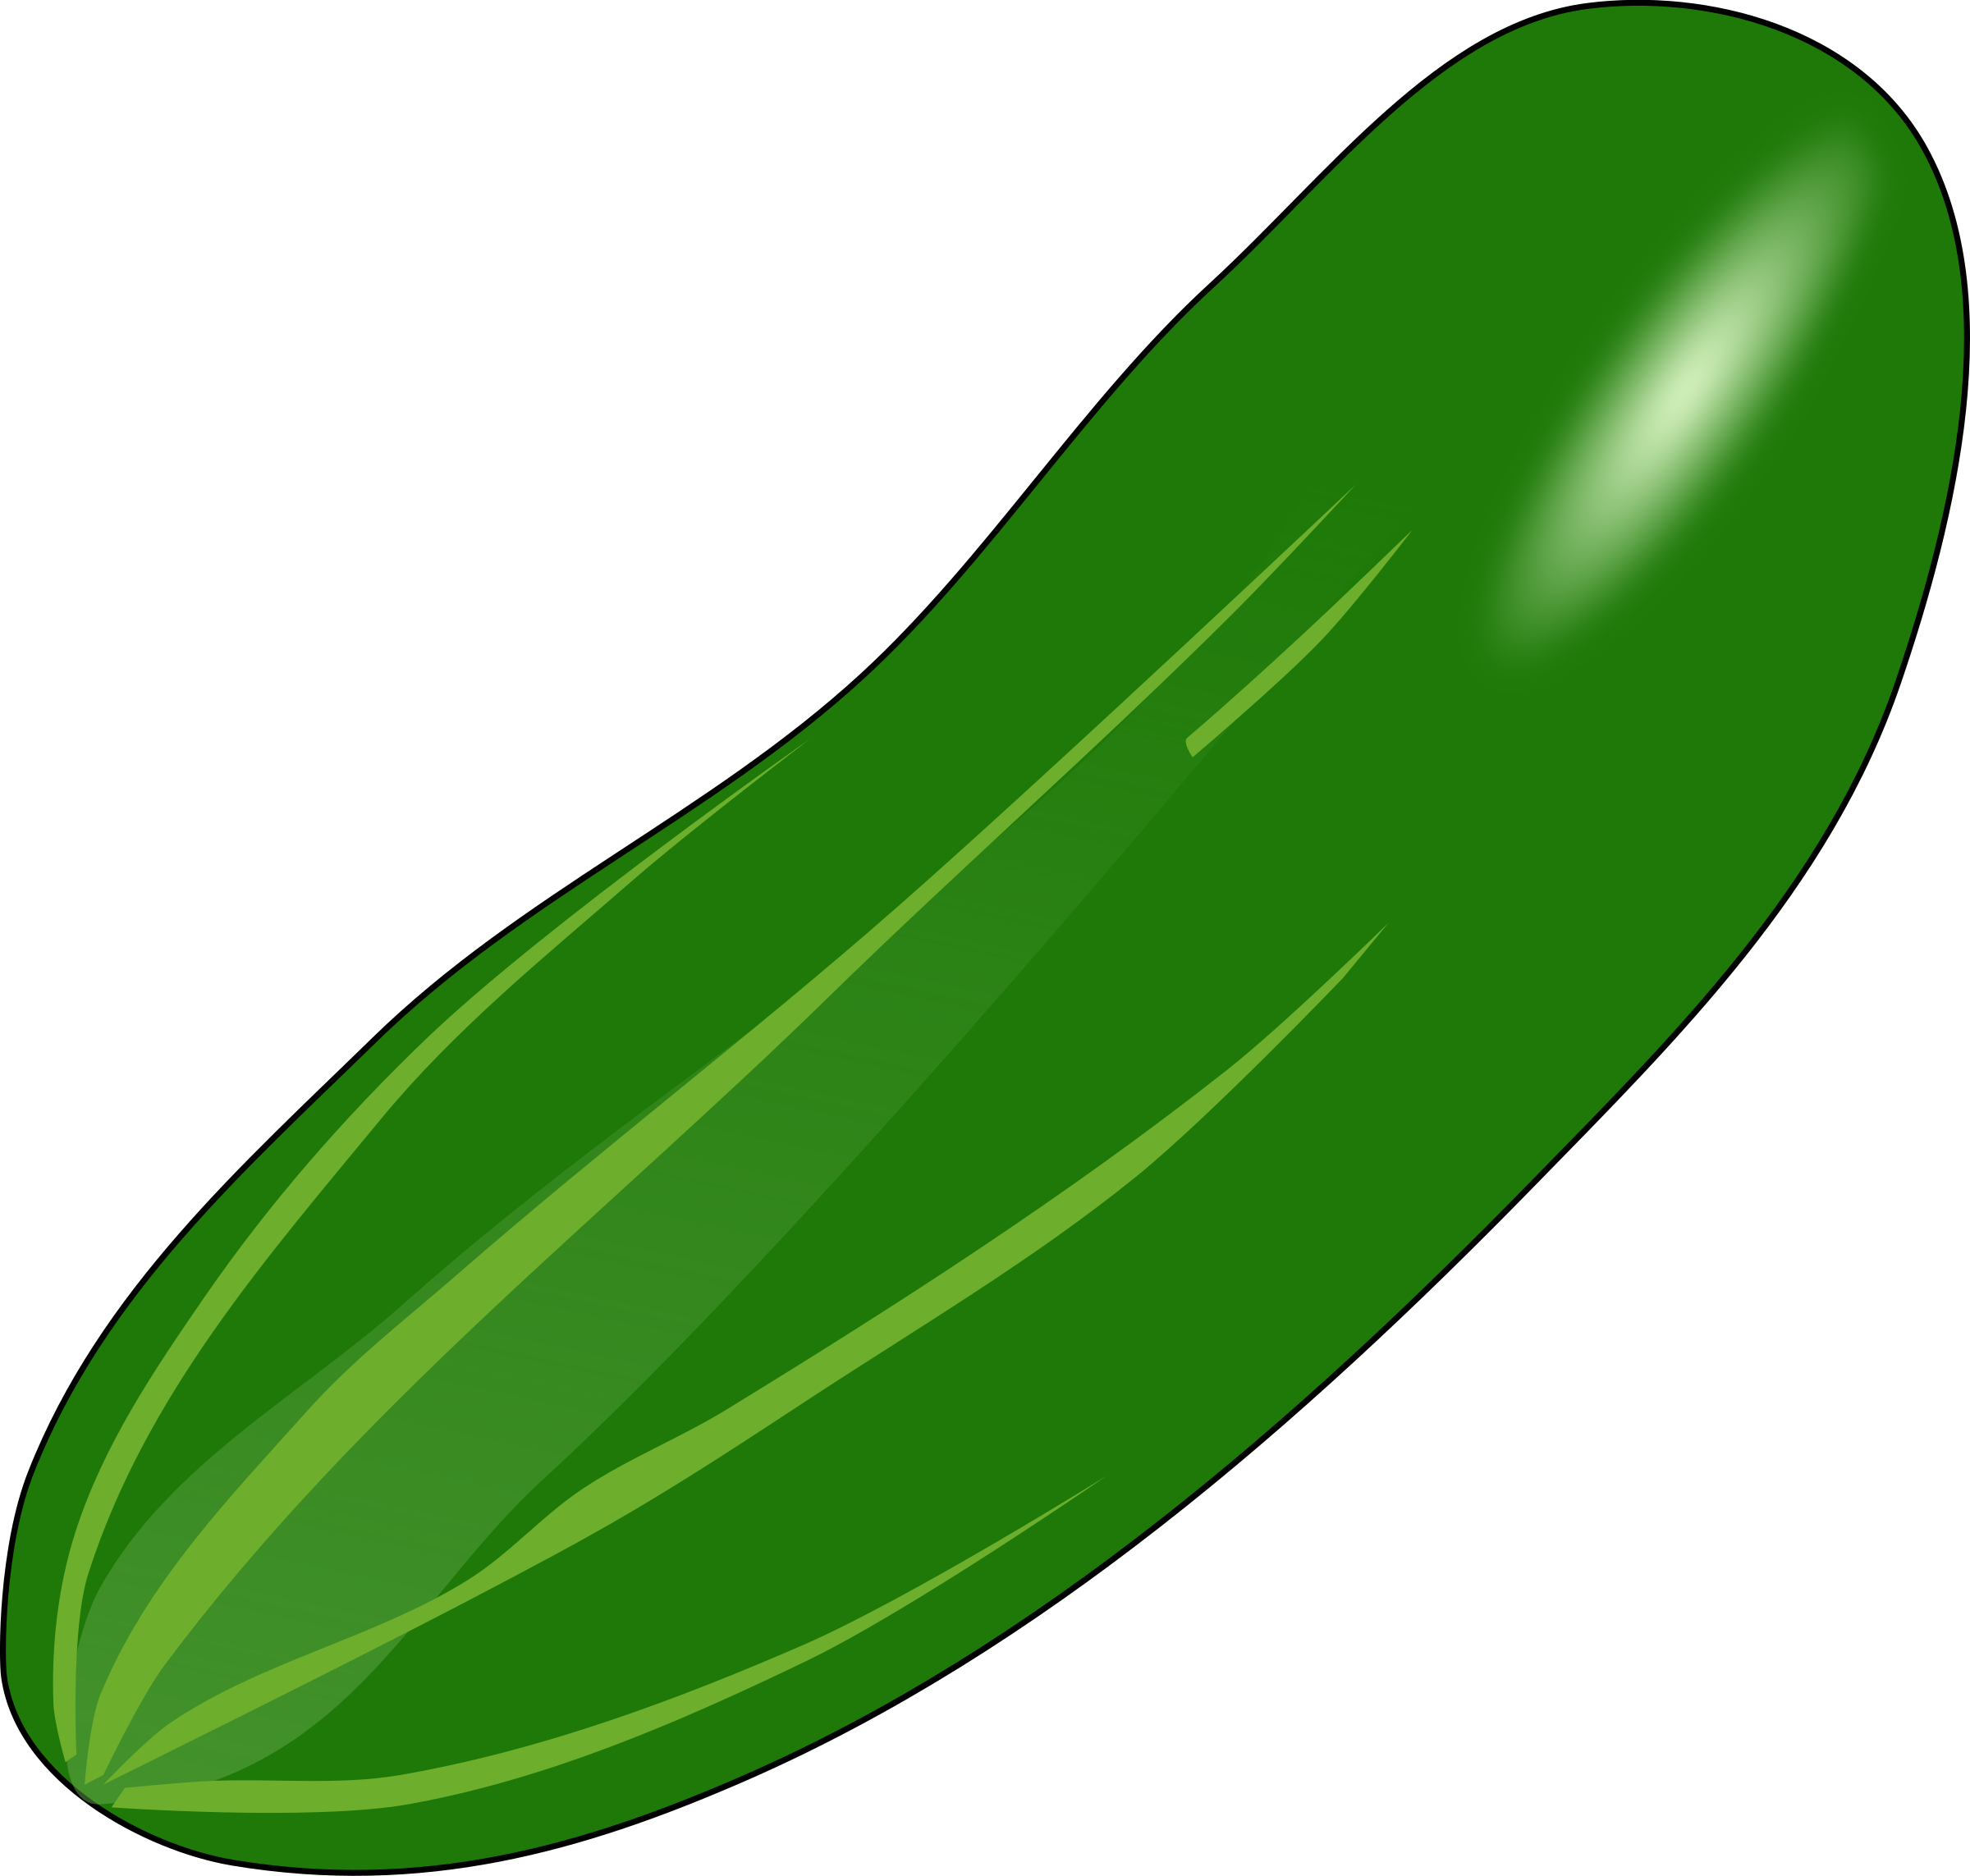 Fresh cucumber clipart graphic royalty free library Free Cucumber Cliparts, Download Free Clip Art, Free Clip Art on ... graphic royalty free library